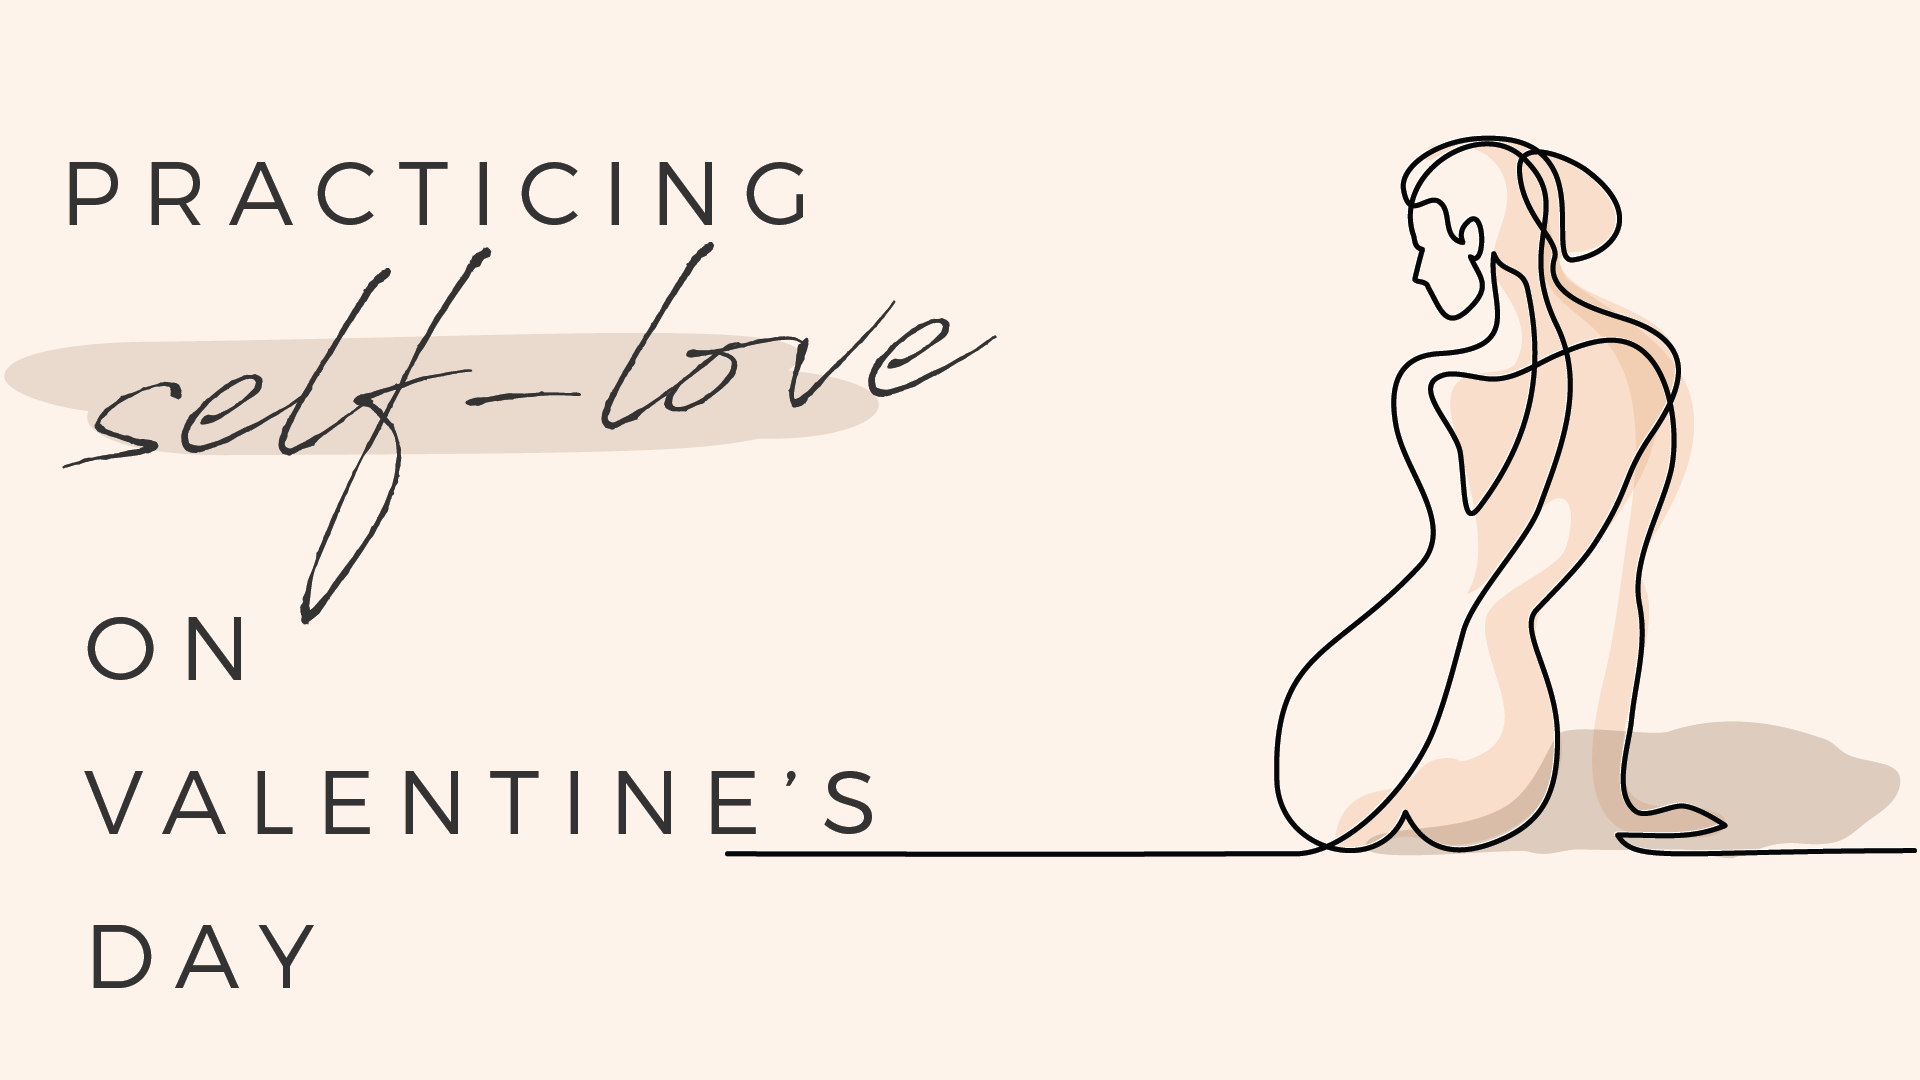 3 ways to practice self love on Valentine's Day